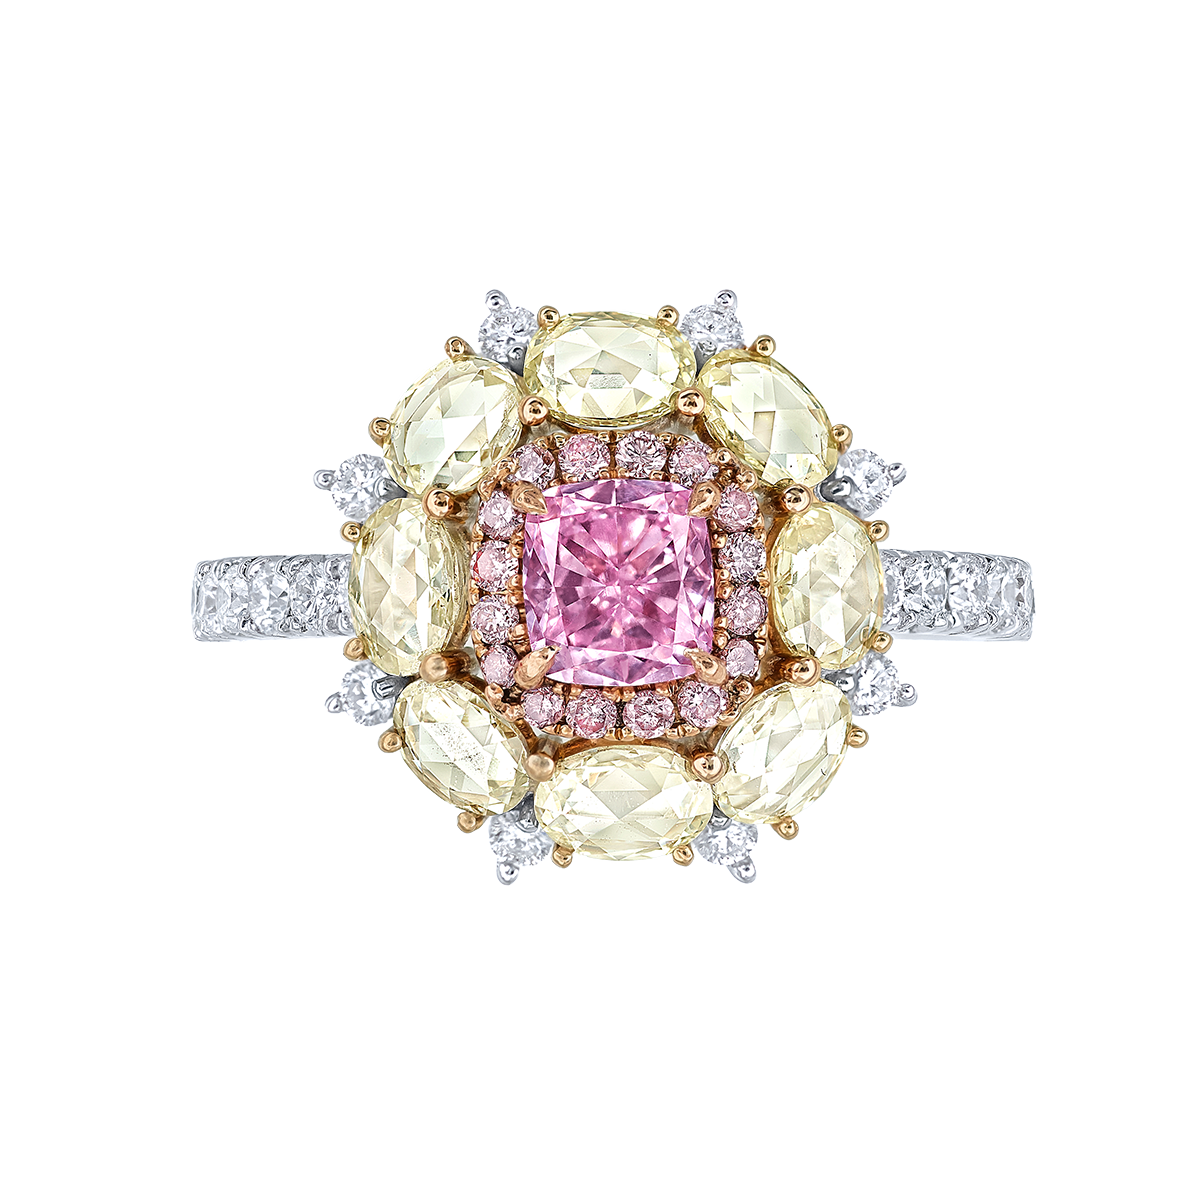 GIA 0.52克拉 粉紫鑽鑽戒